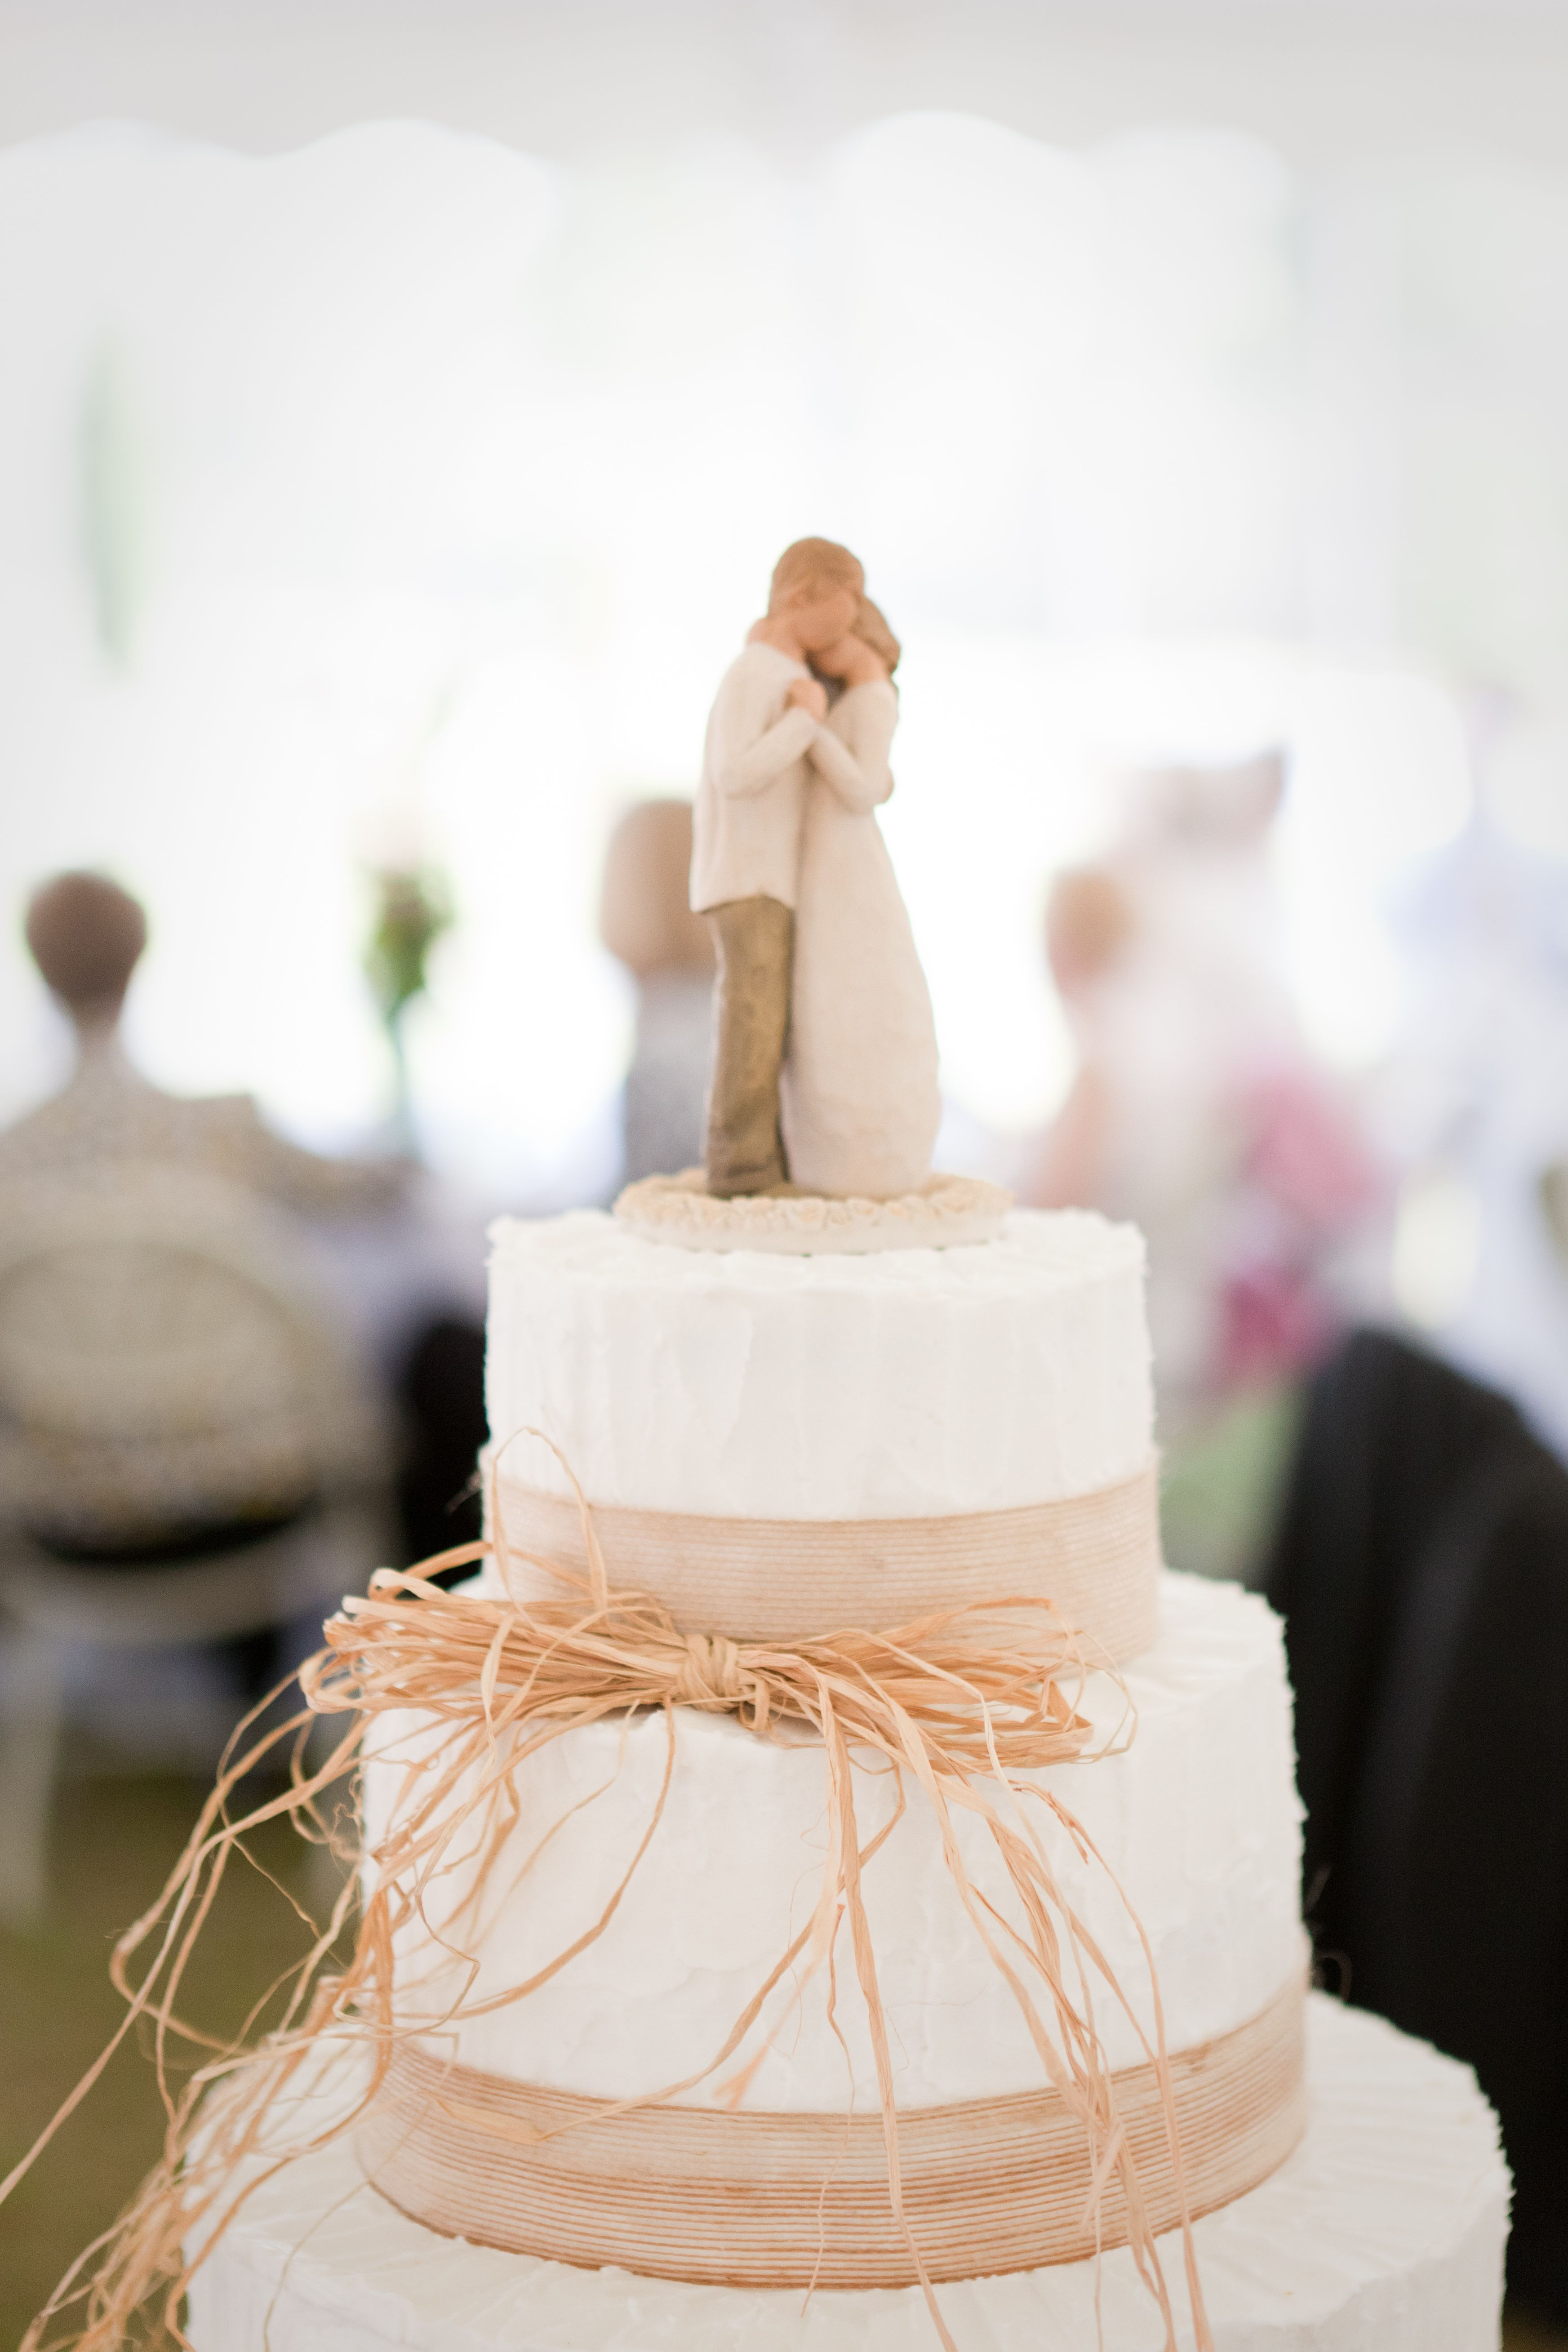 Simple Wedding CakeLOVE The Willow Tree Figurine As Cake Topper